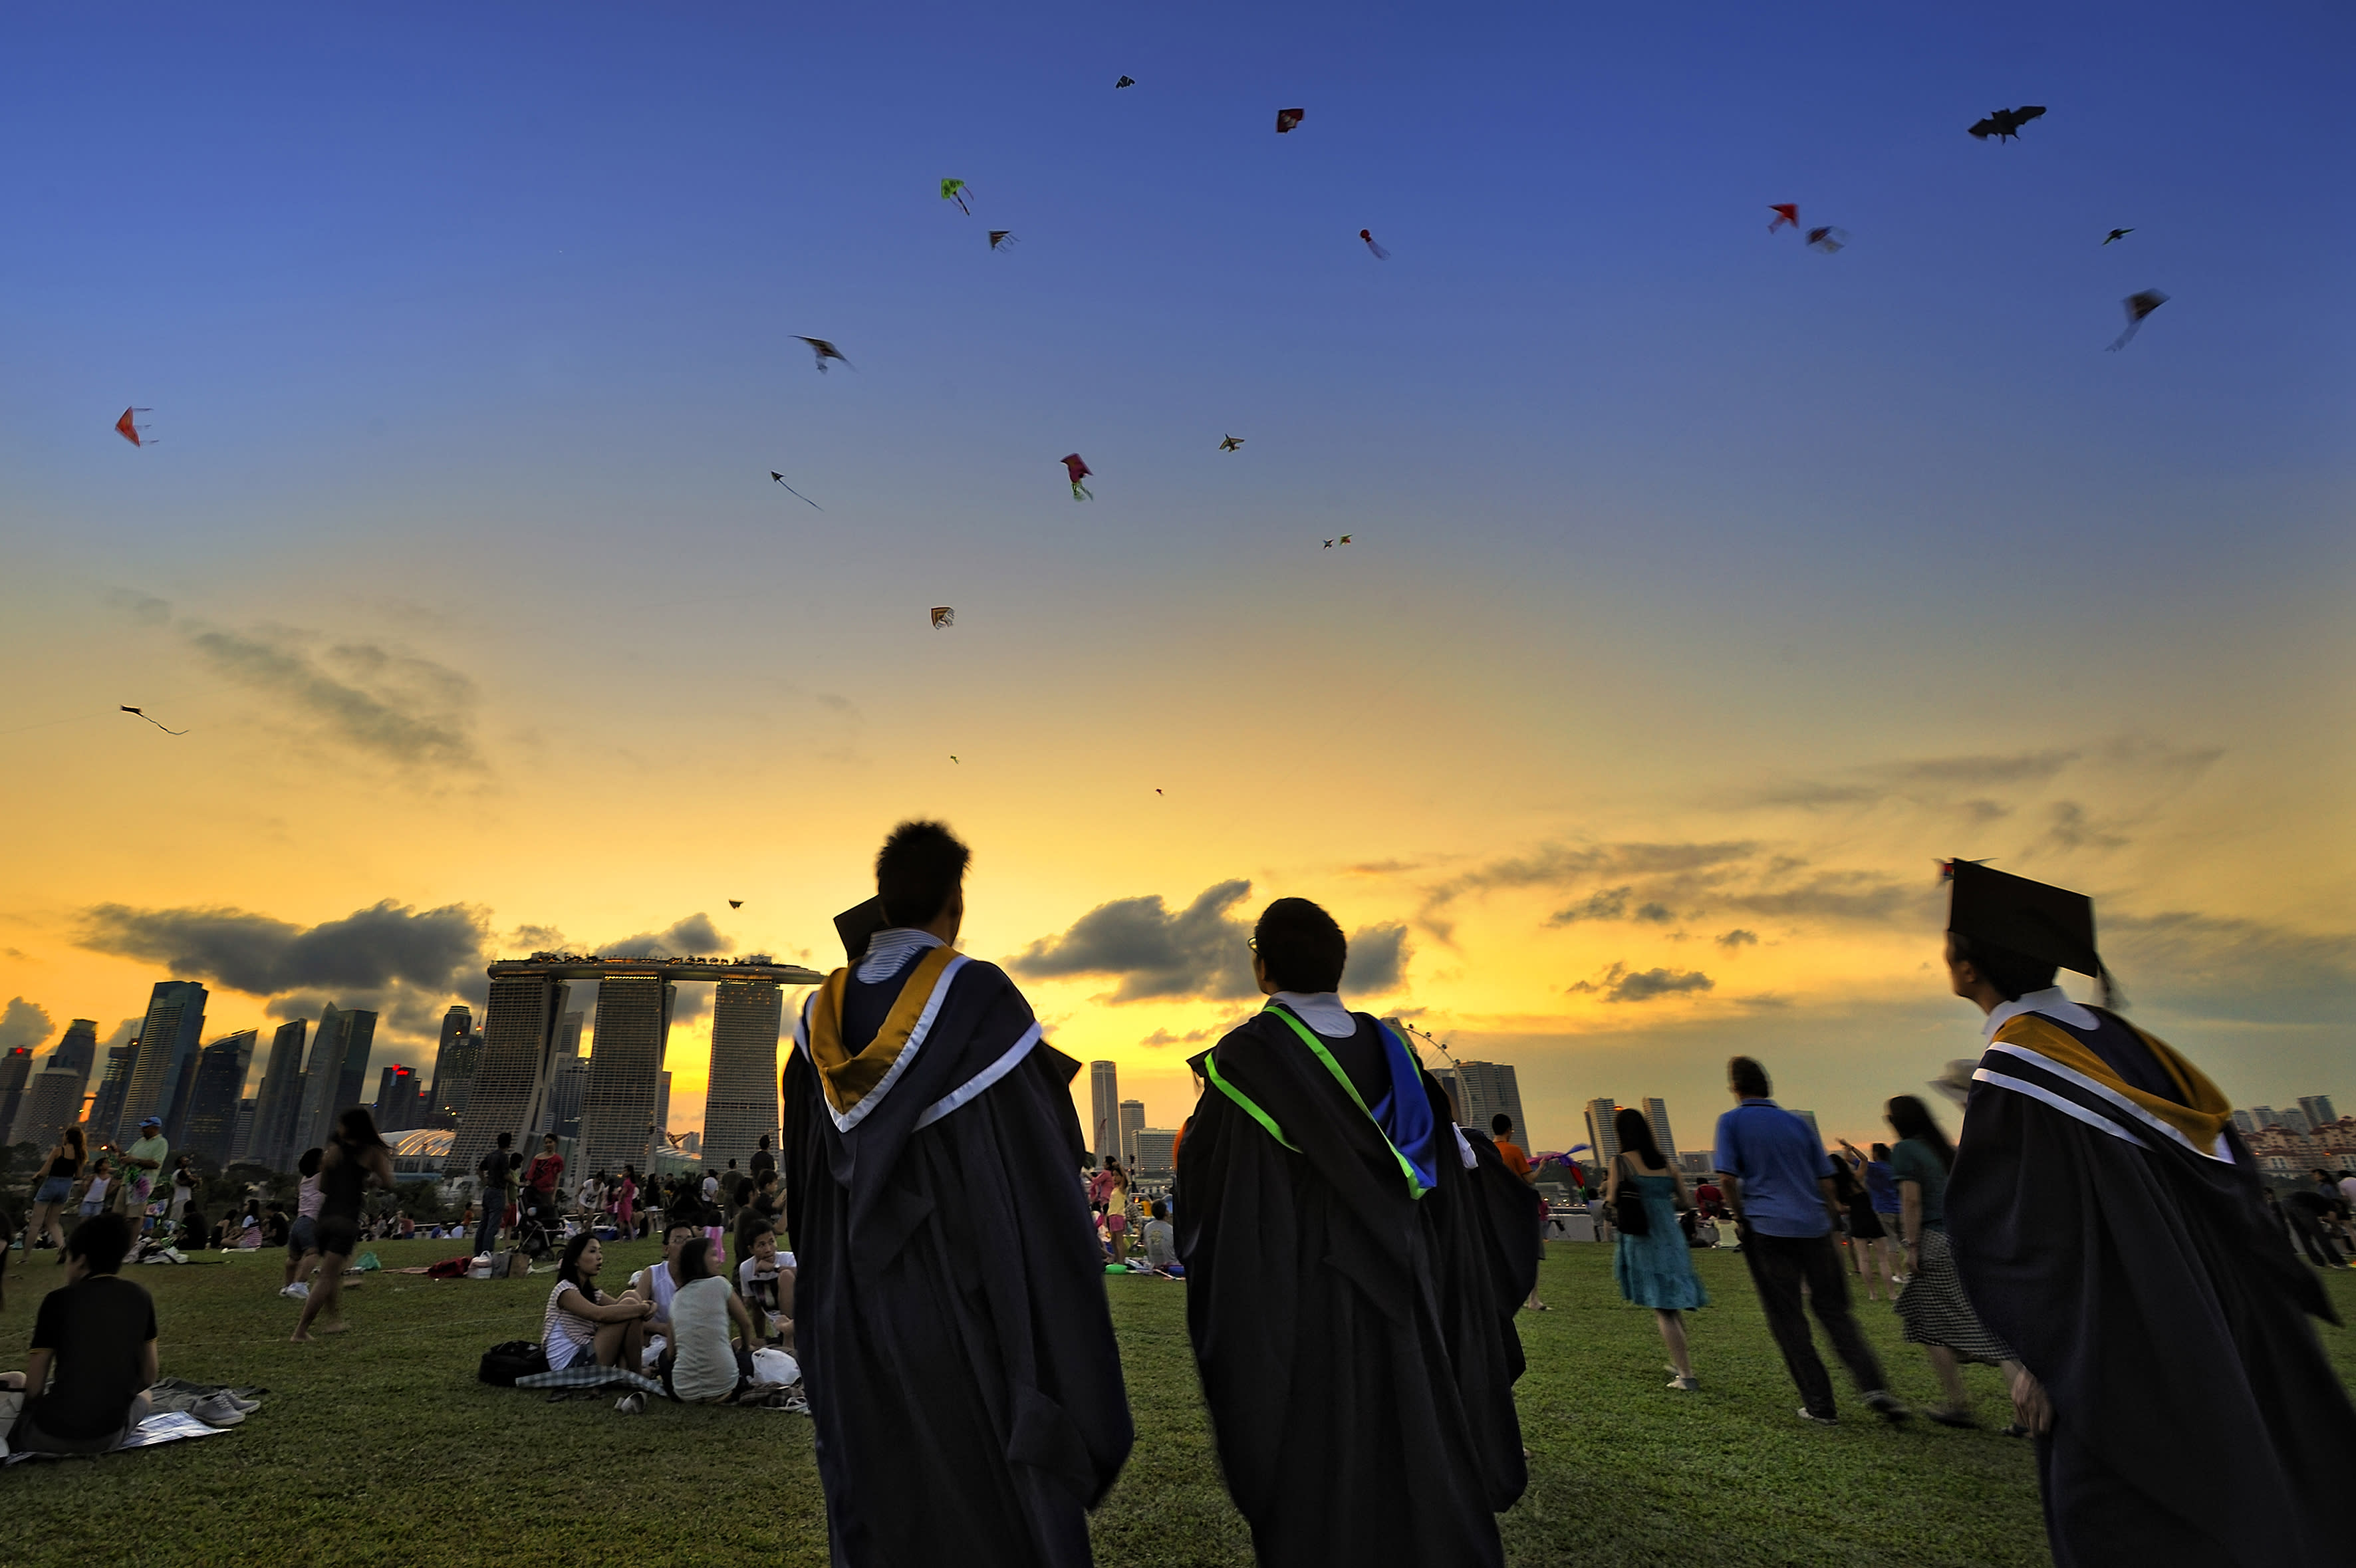 More than half of Singaporean grads find jobs unrelated to degrees: study